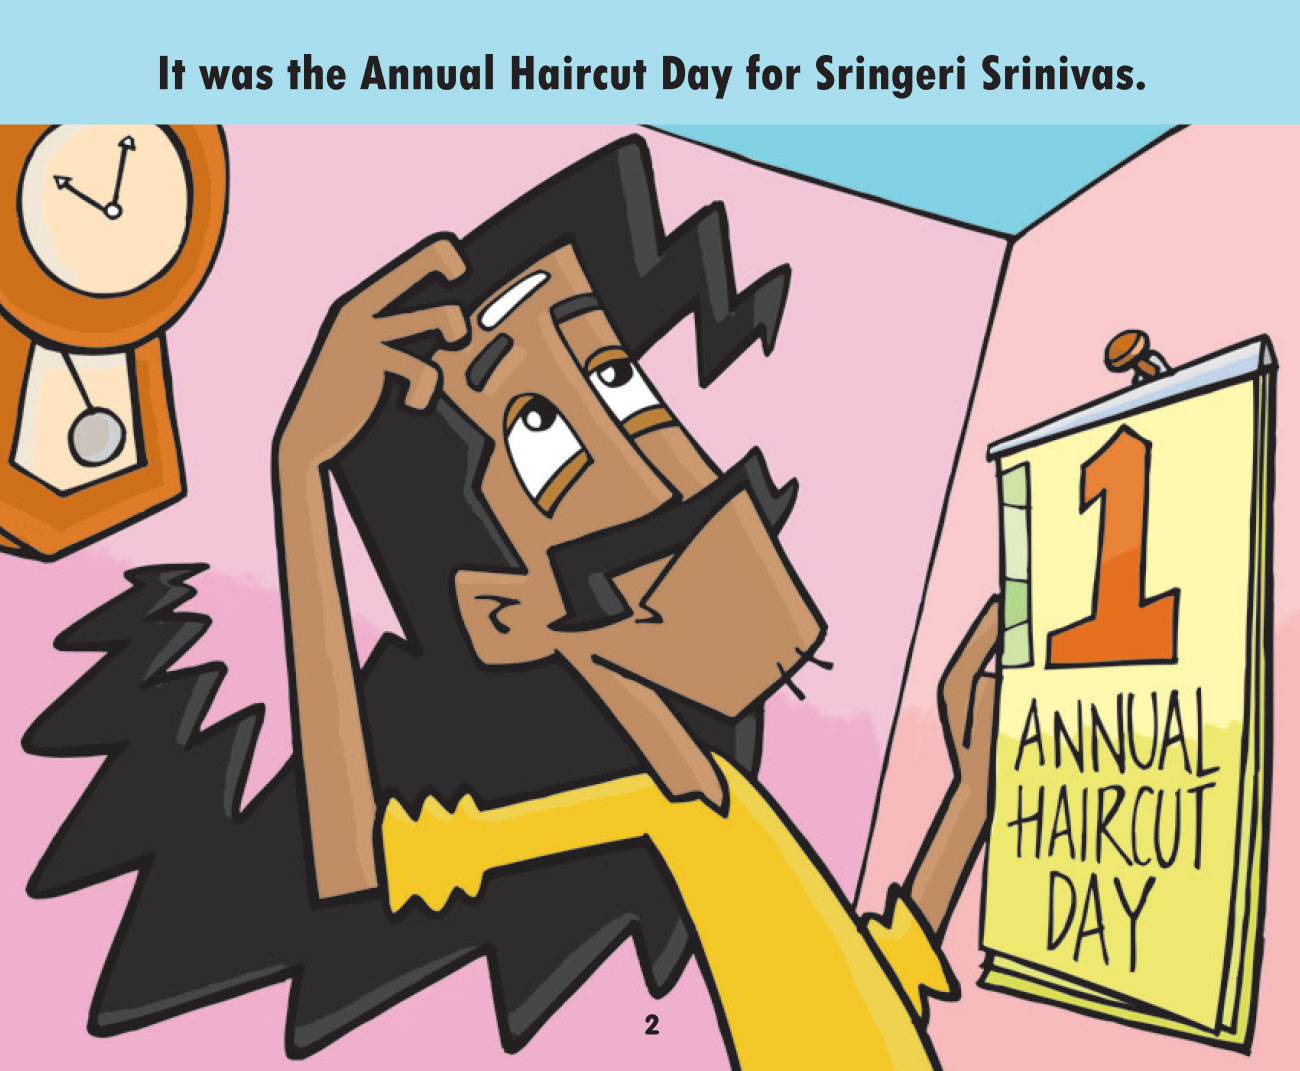 Free short story for kids - Annual Haircut Day - page 2